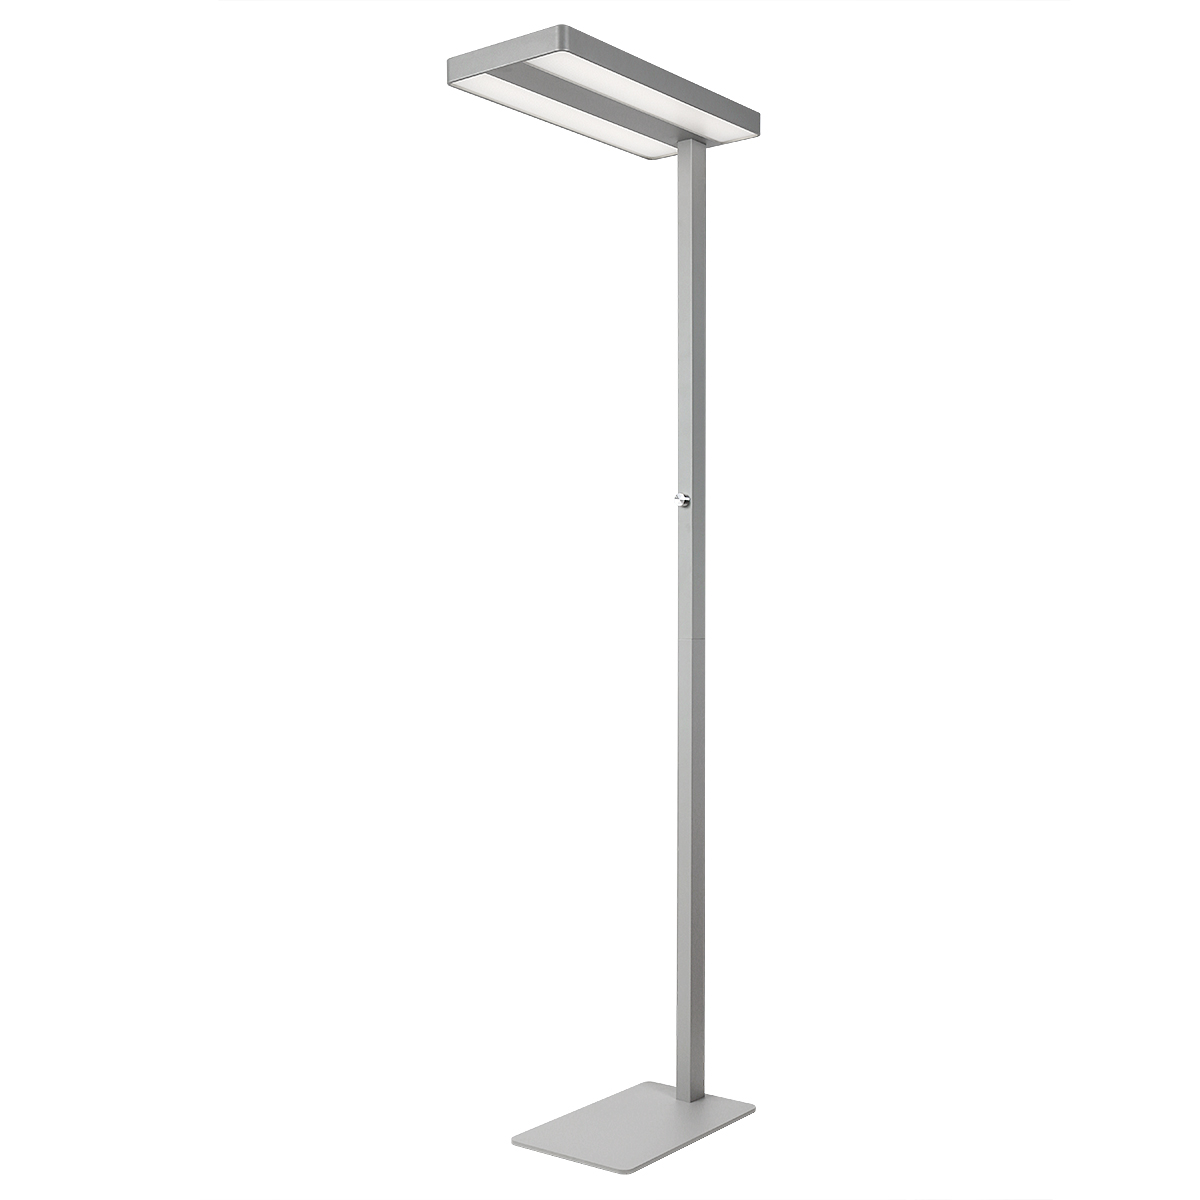 Dimmbare Stehlampe Details Zu 60w Led Stehleuchte Dimmbare Stehlampe 2600lm 2800lm Neutralweiß Büro Stehlampe